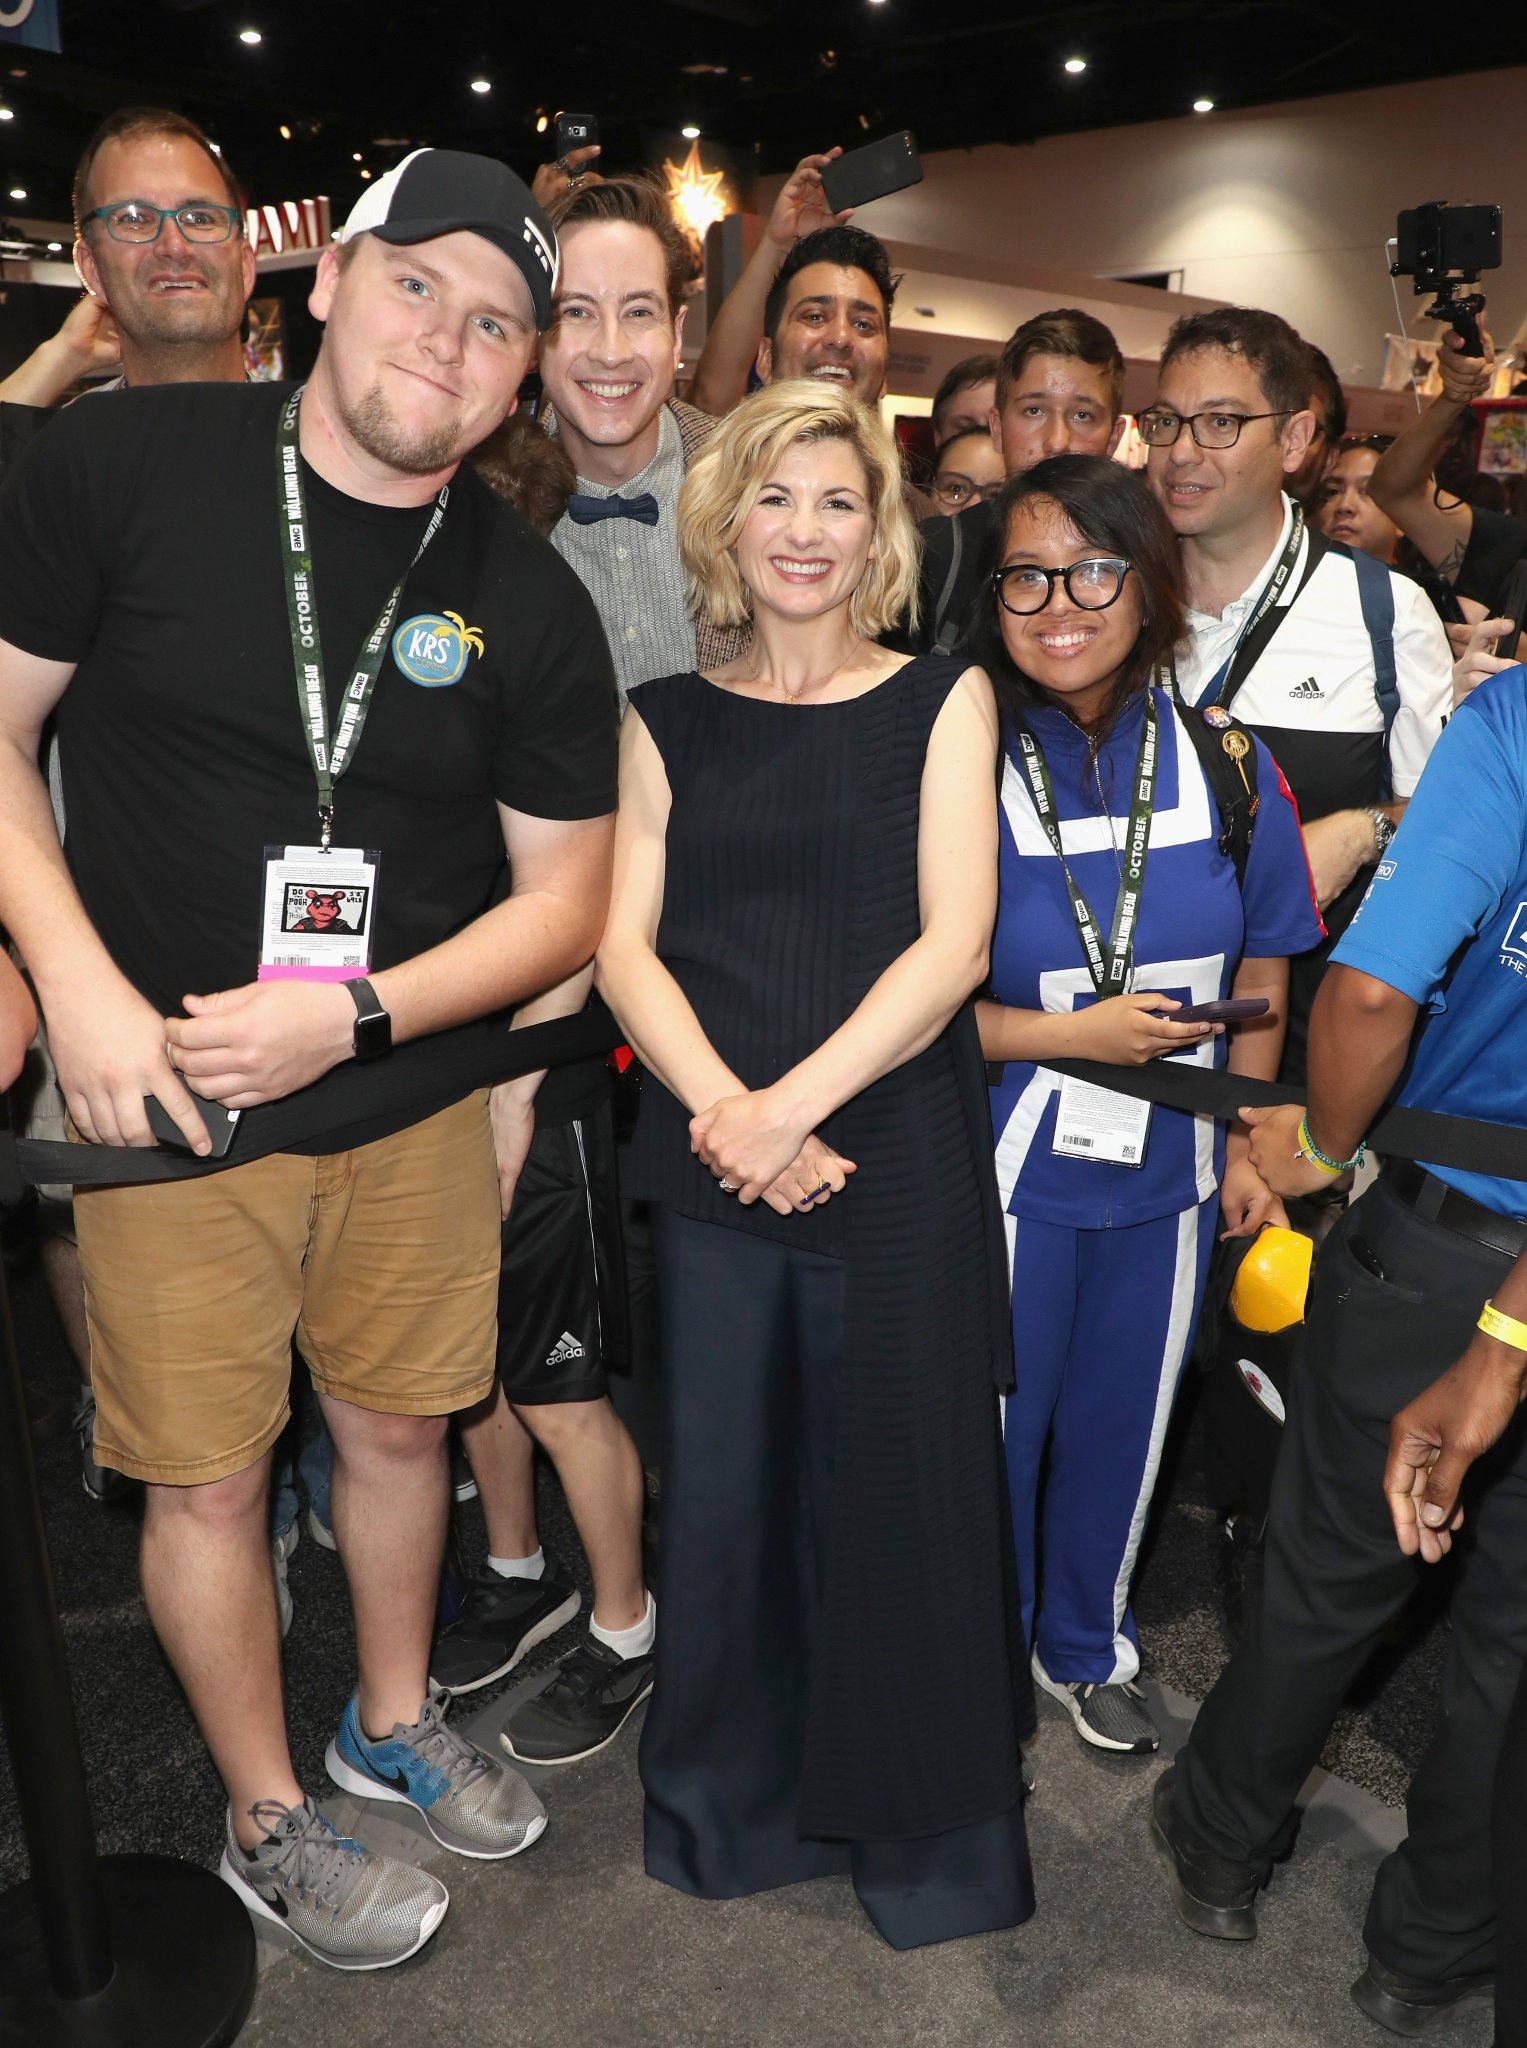 The #DoctorWho crew greets fans on the #SDCC floor. https://t.co/ANeEPBcJRg https://t.co/tMl8joqiRY